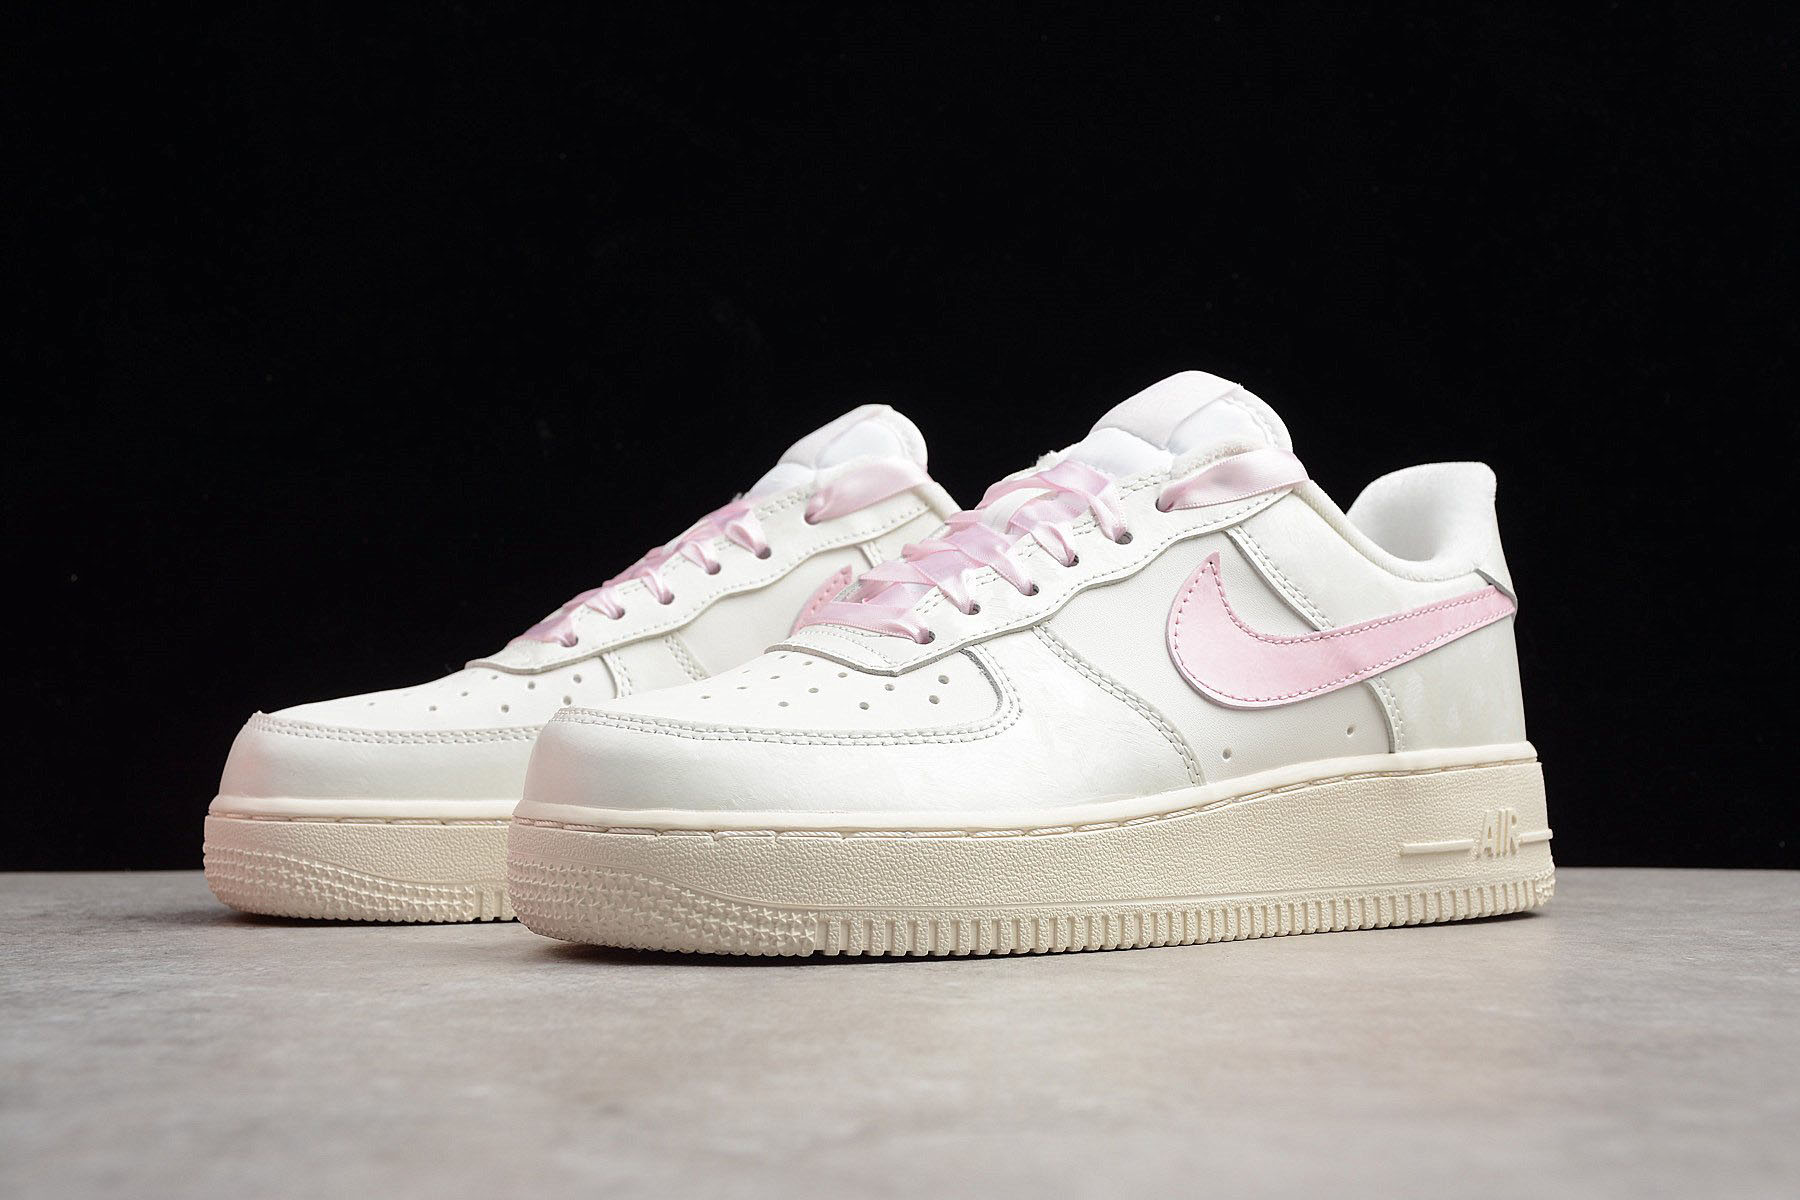 Nike Air Force 1 Flyknit Low shoes pink